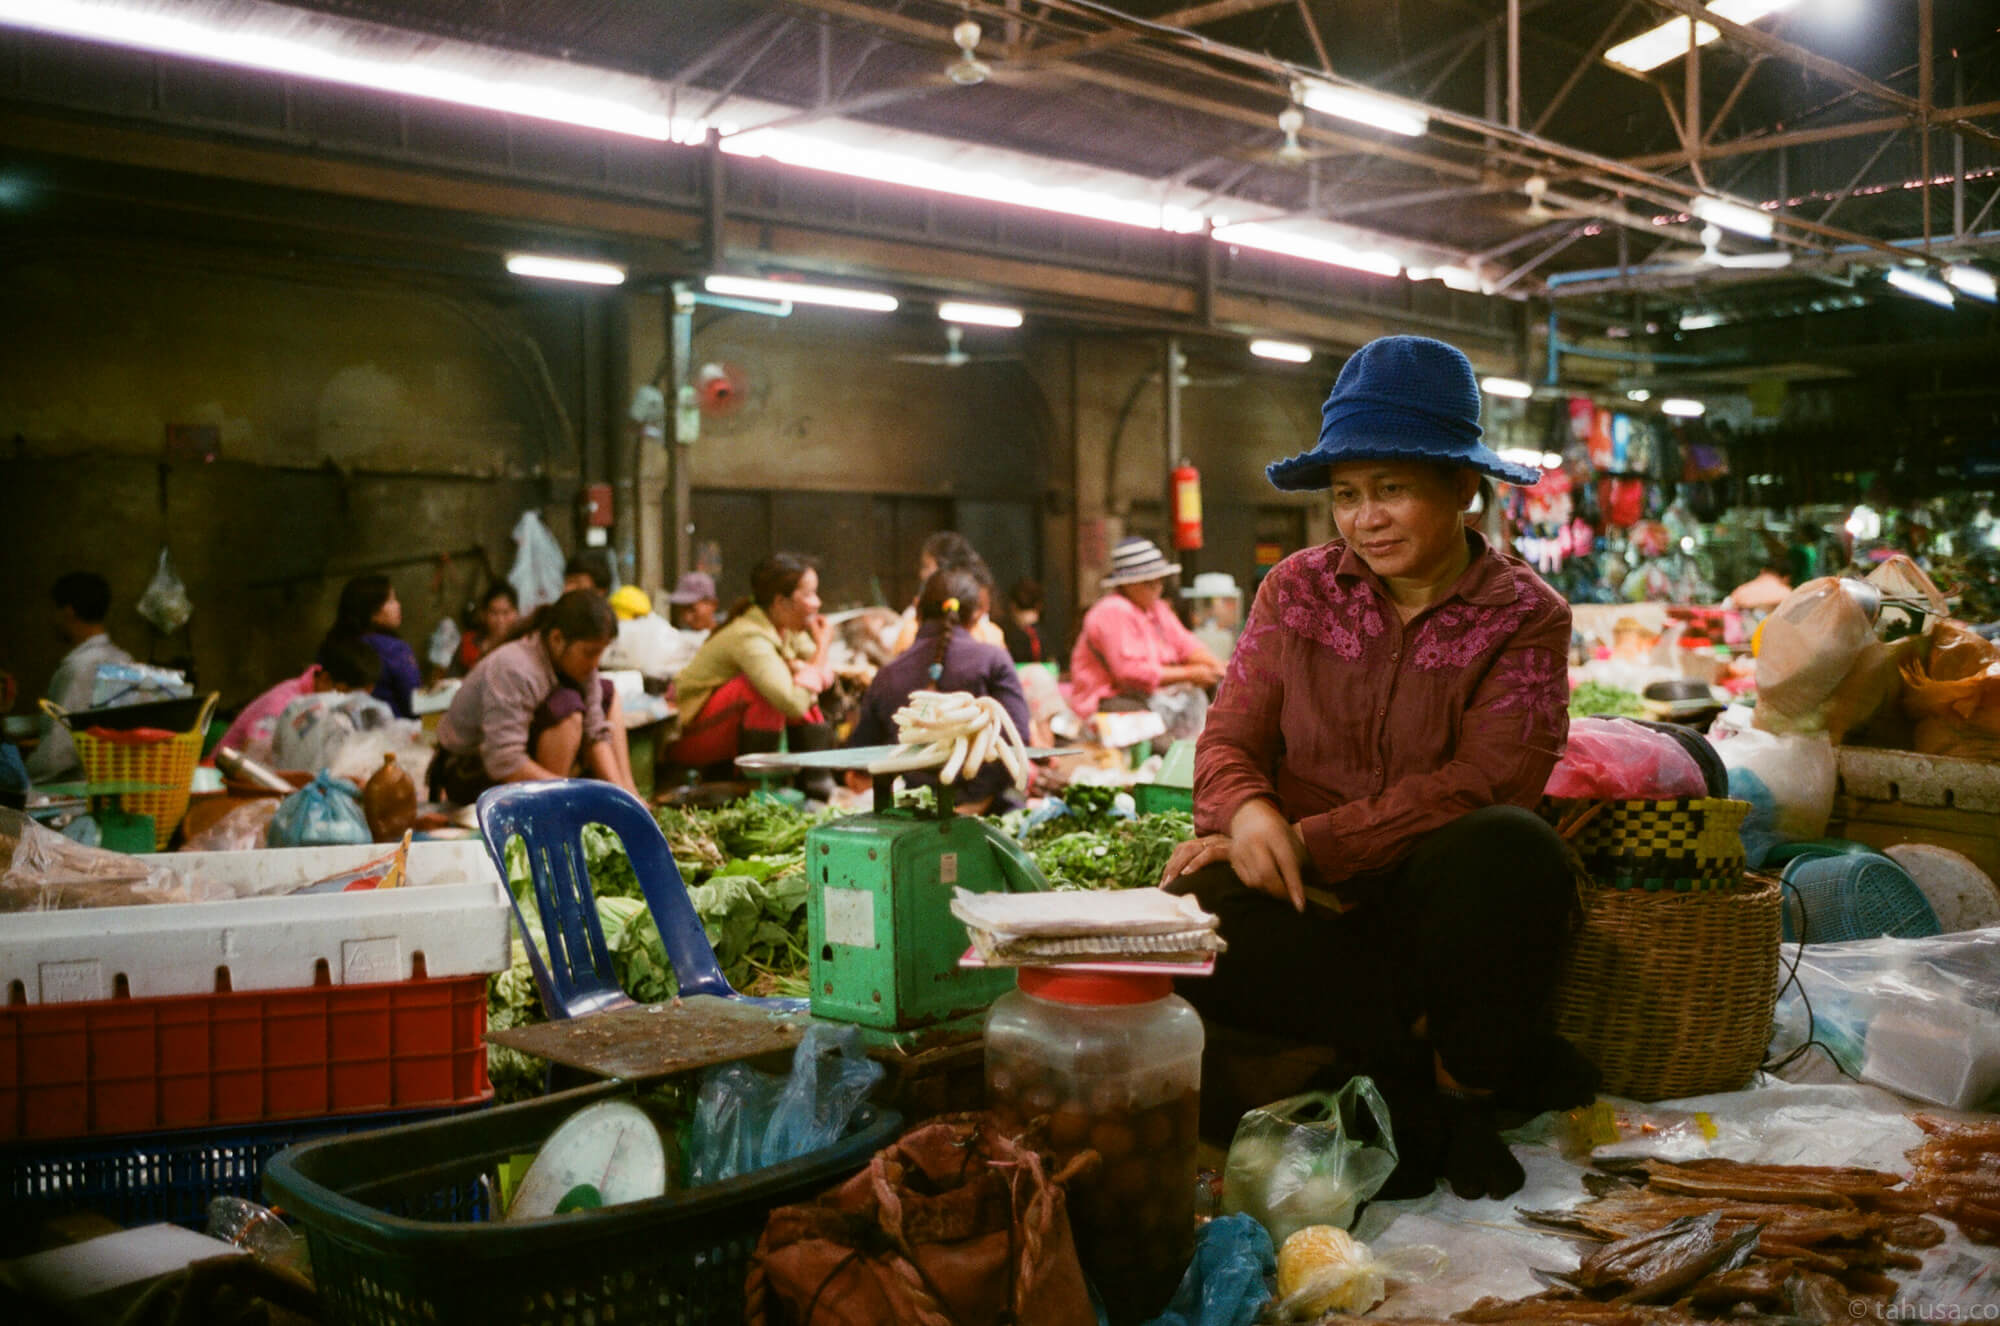 woman-selling-vegetables-in-local-food-market-cambodia-angkor-siem-reap-south-east-asia-travel-travelling-street-snap-using-leica-m2-summicron-35mm-f2-v1-8elements-analog-film-is-fuji-fujifilm-superia-premium-400-iso400